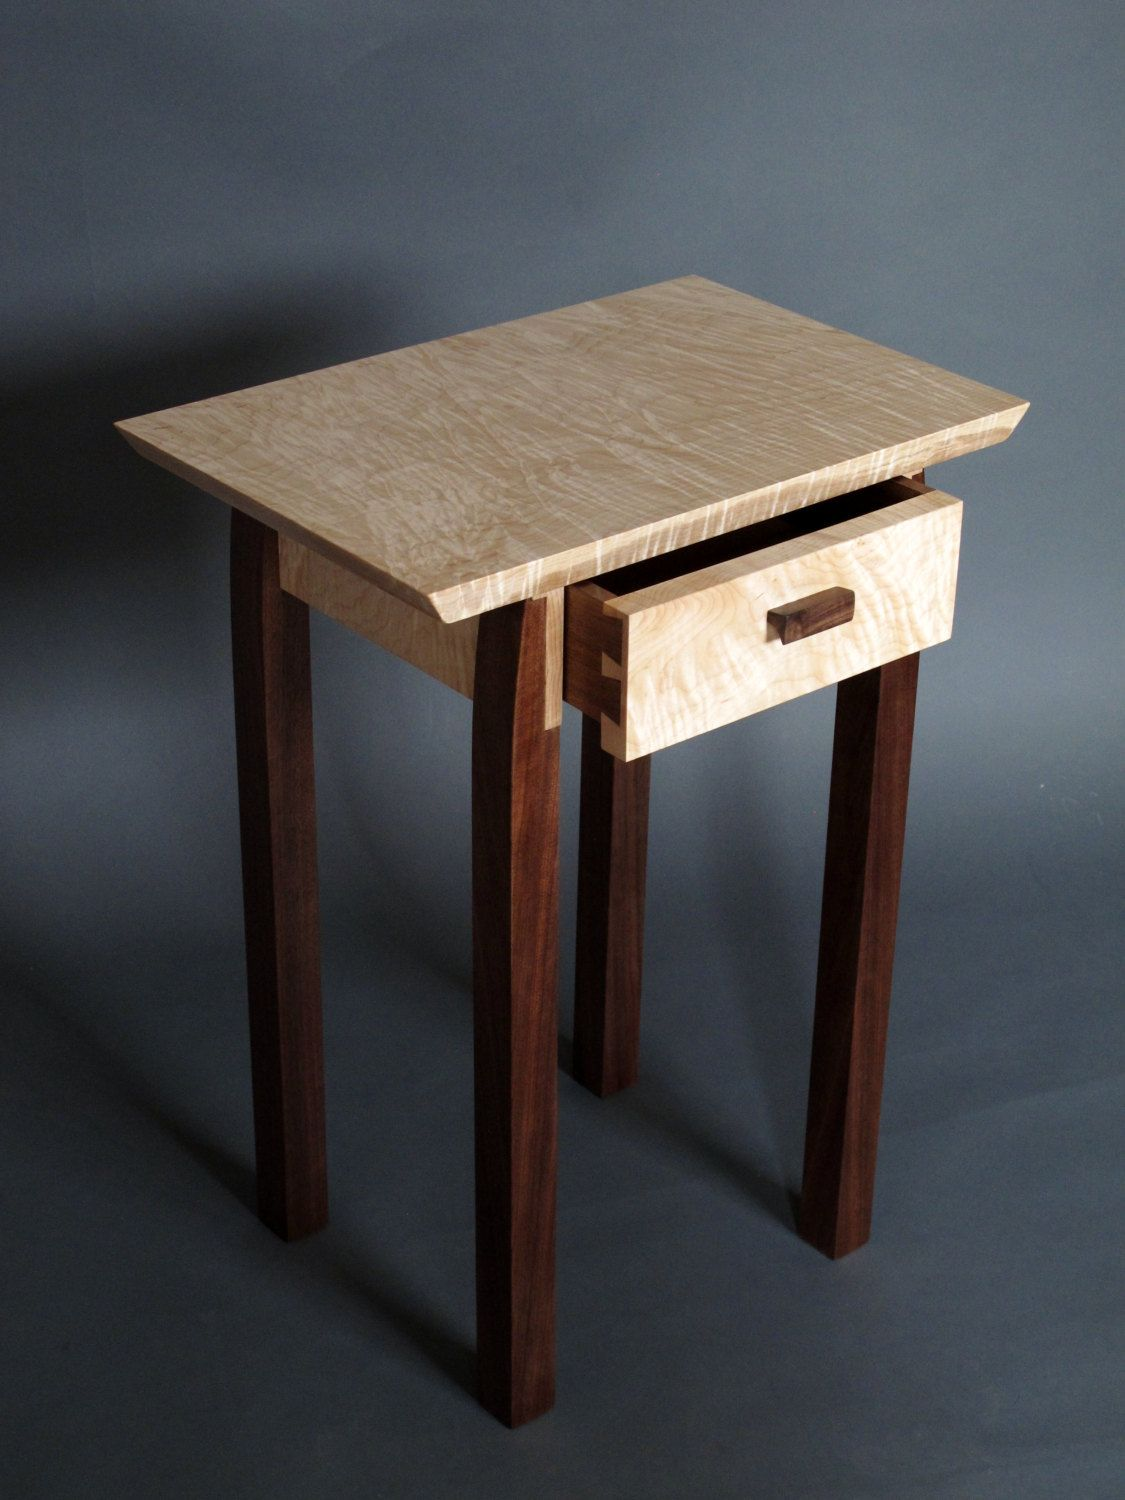 Small Rectangular Side Tables Bed Side Table With Drawer Narrow Wooden Table